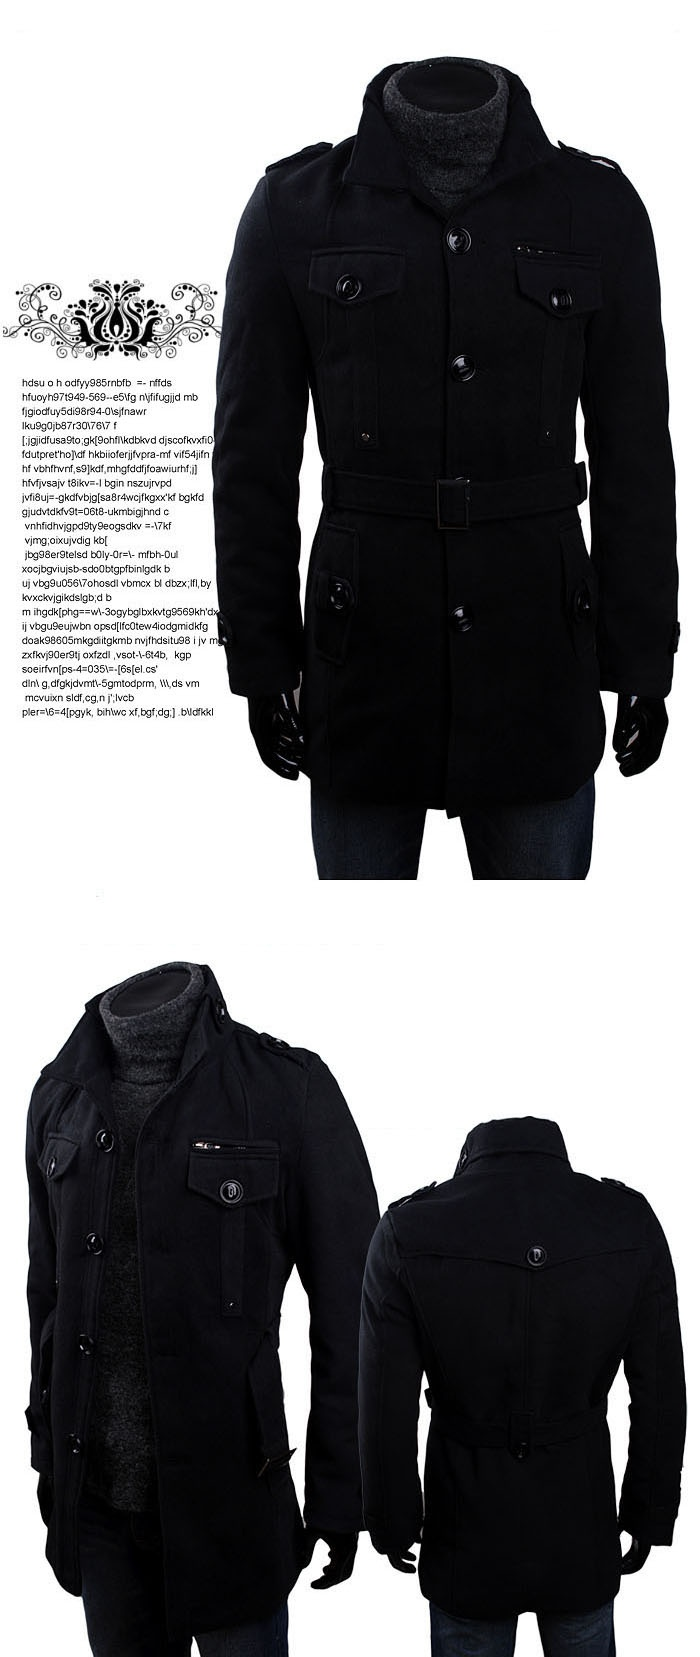 High Quality Korean Fashion Style Double-Breasted and Shoulder Pad Embellished Thicken Coat For Men